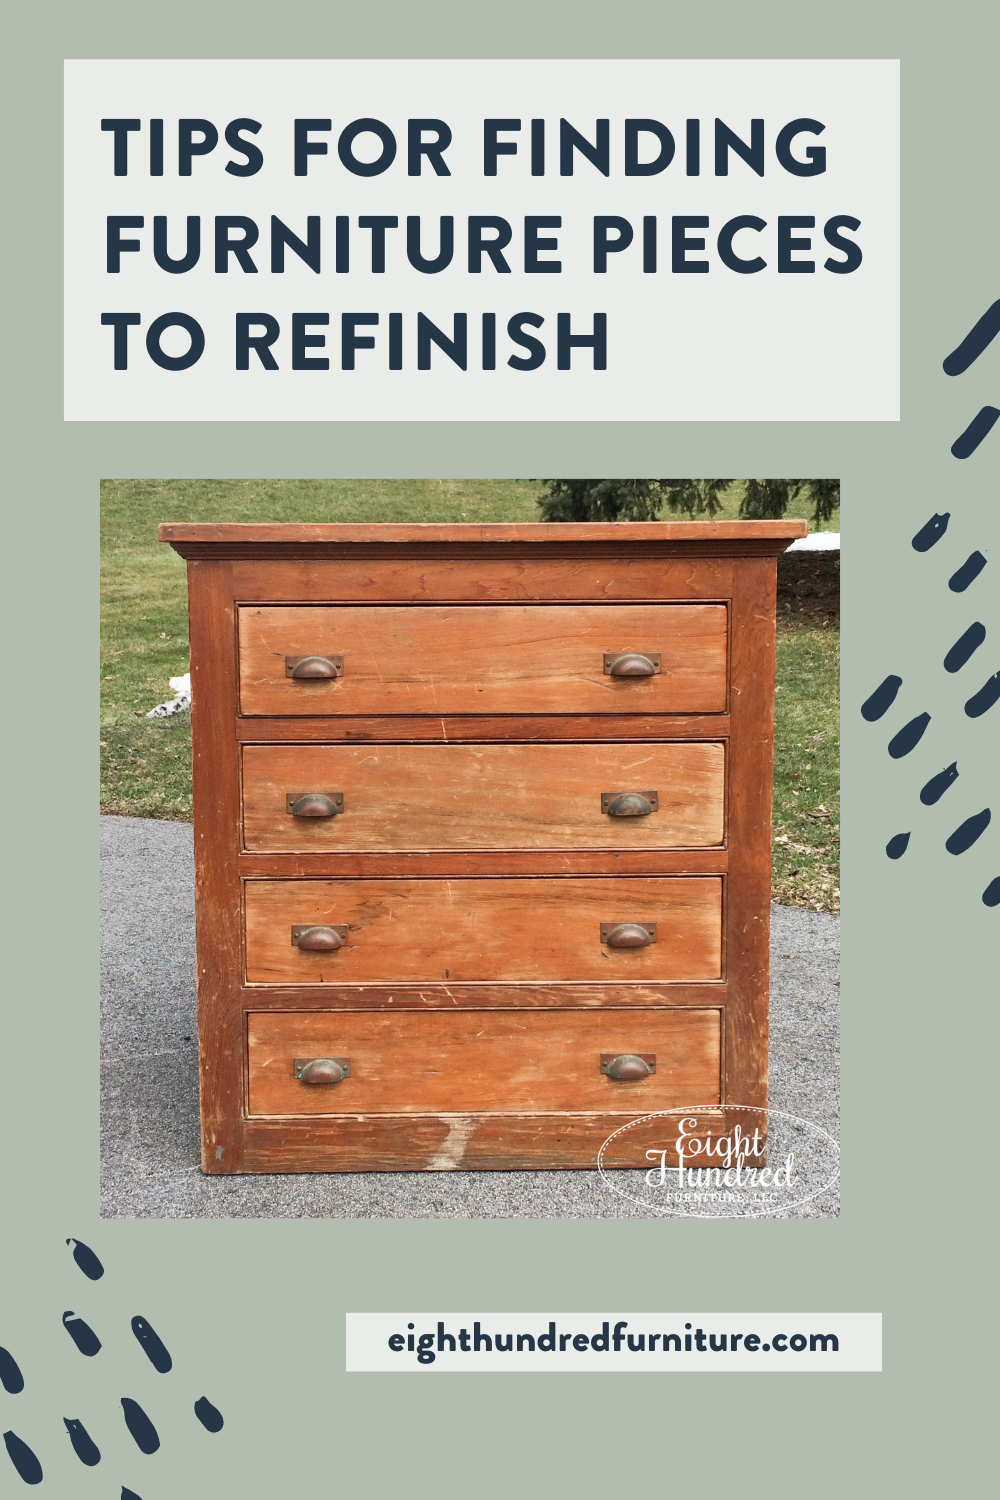 Tips for finding furniture pieces to refinish, Eight Hundred Furniture